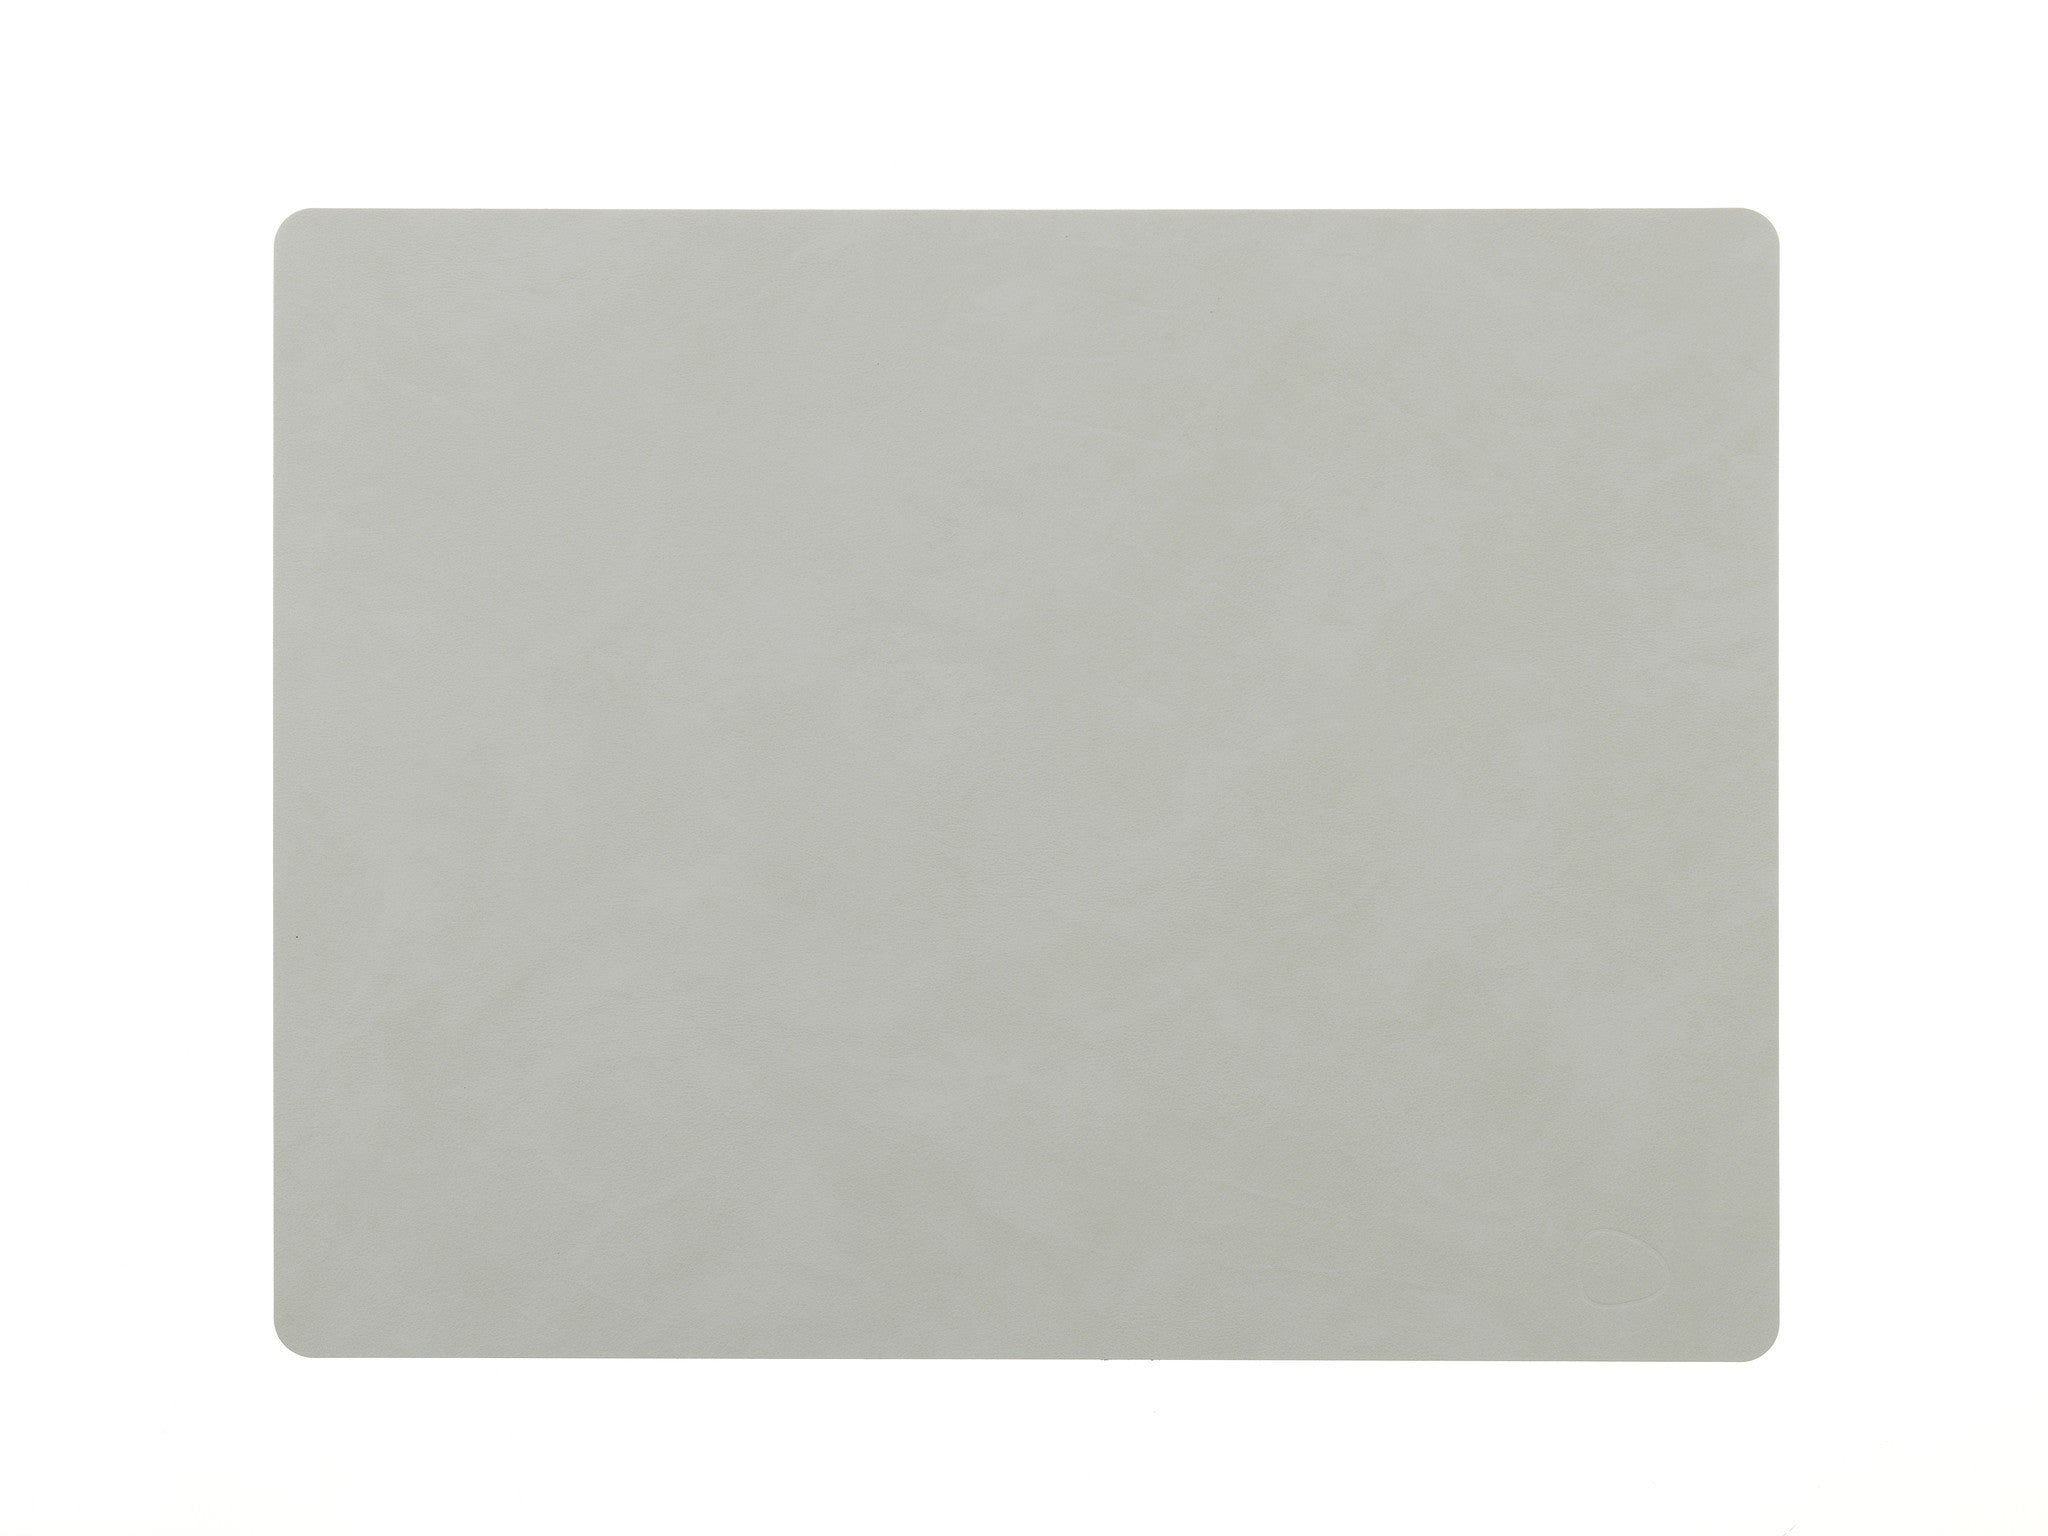 LindDNA TABLEMAT SQUARE L metallic/Nupo - Eclectic Cool  - 1